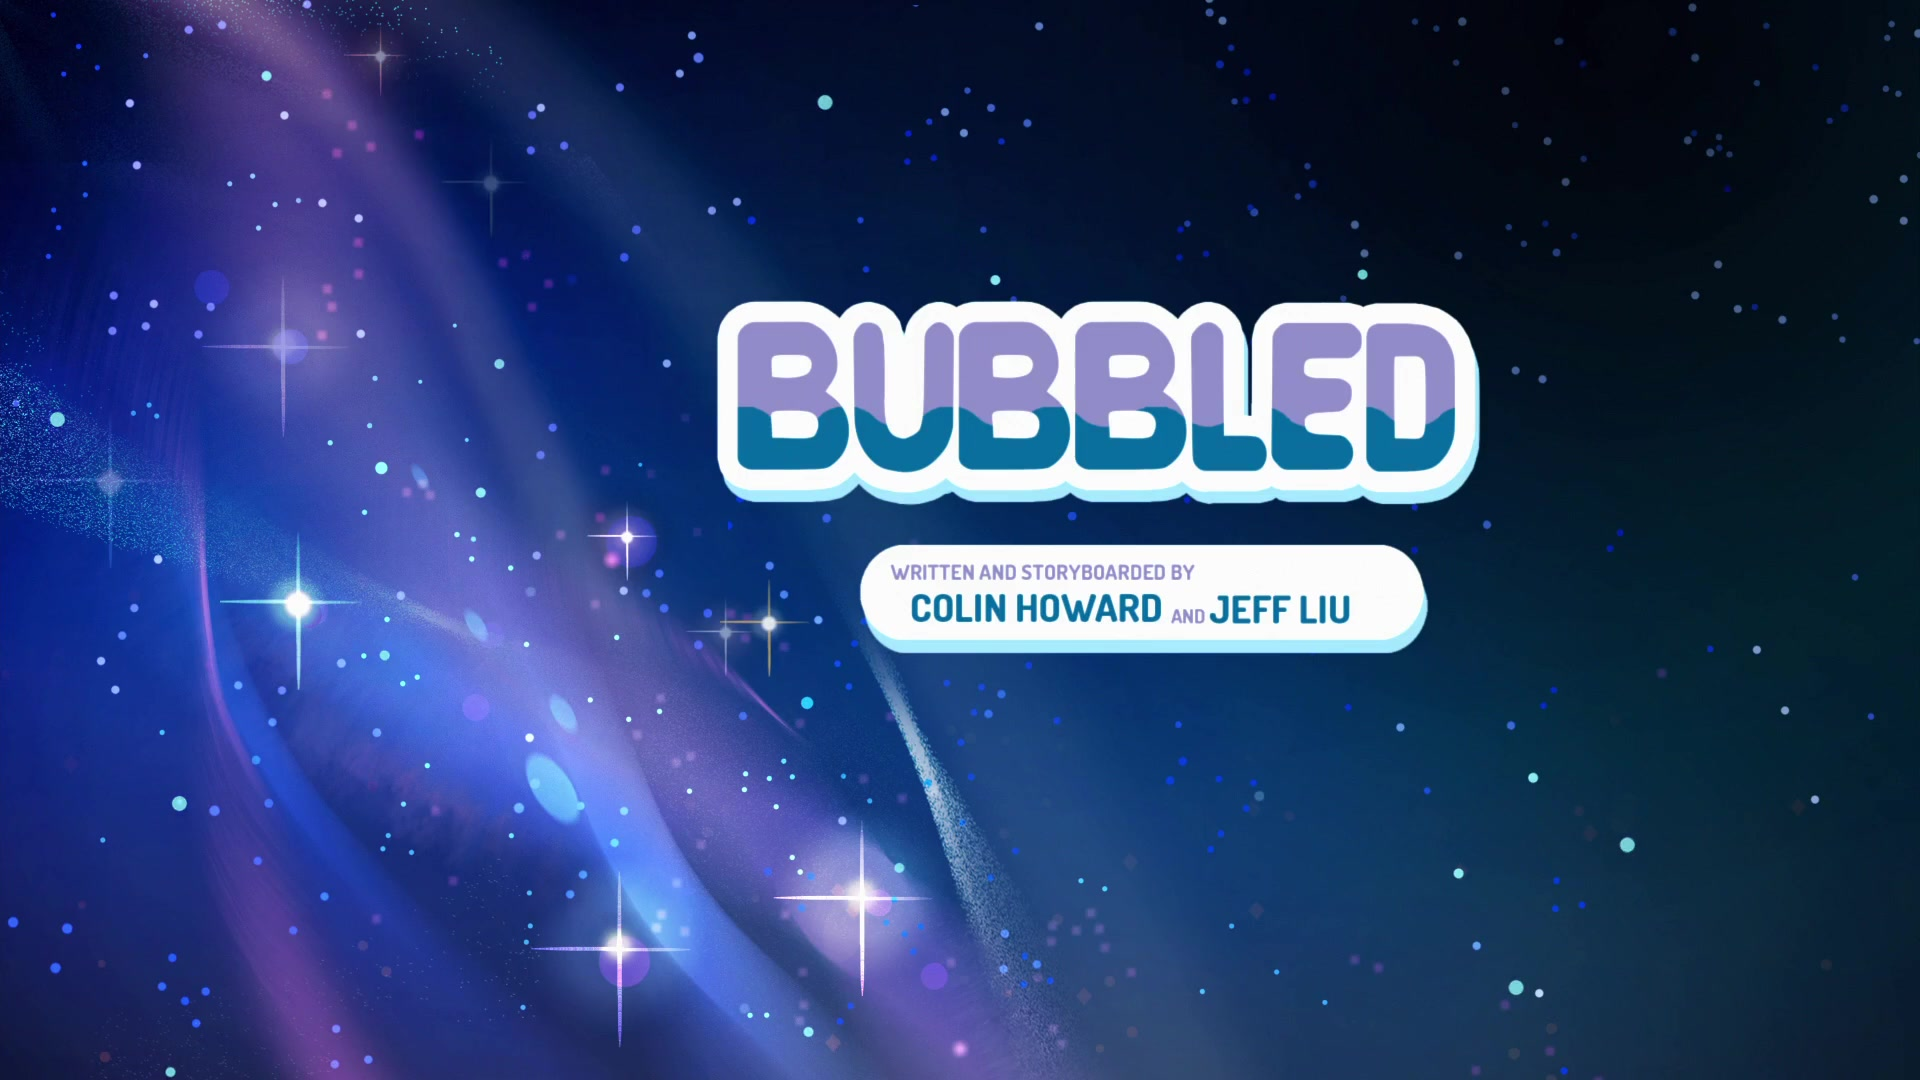 Bubbled/Gallery